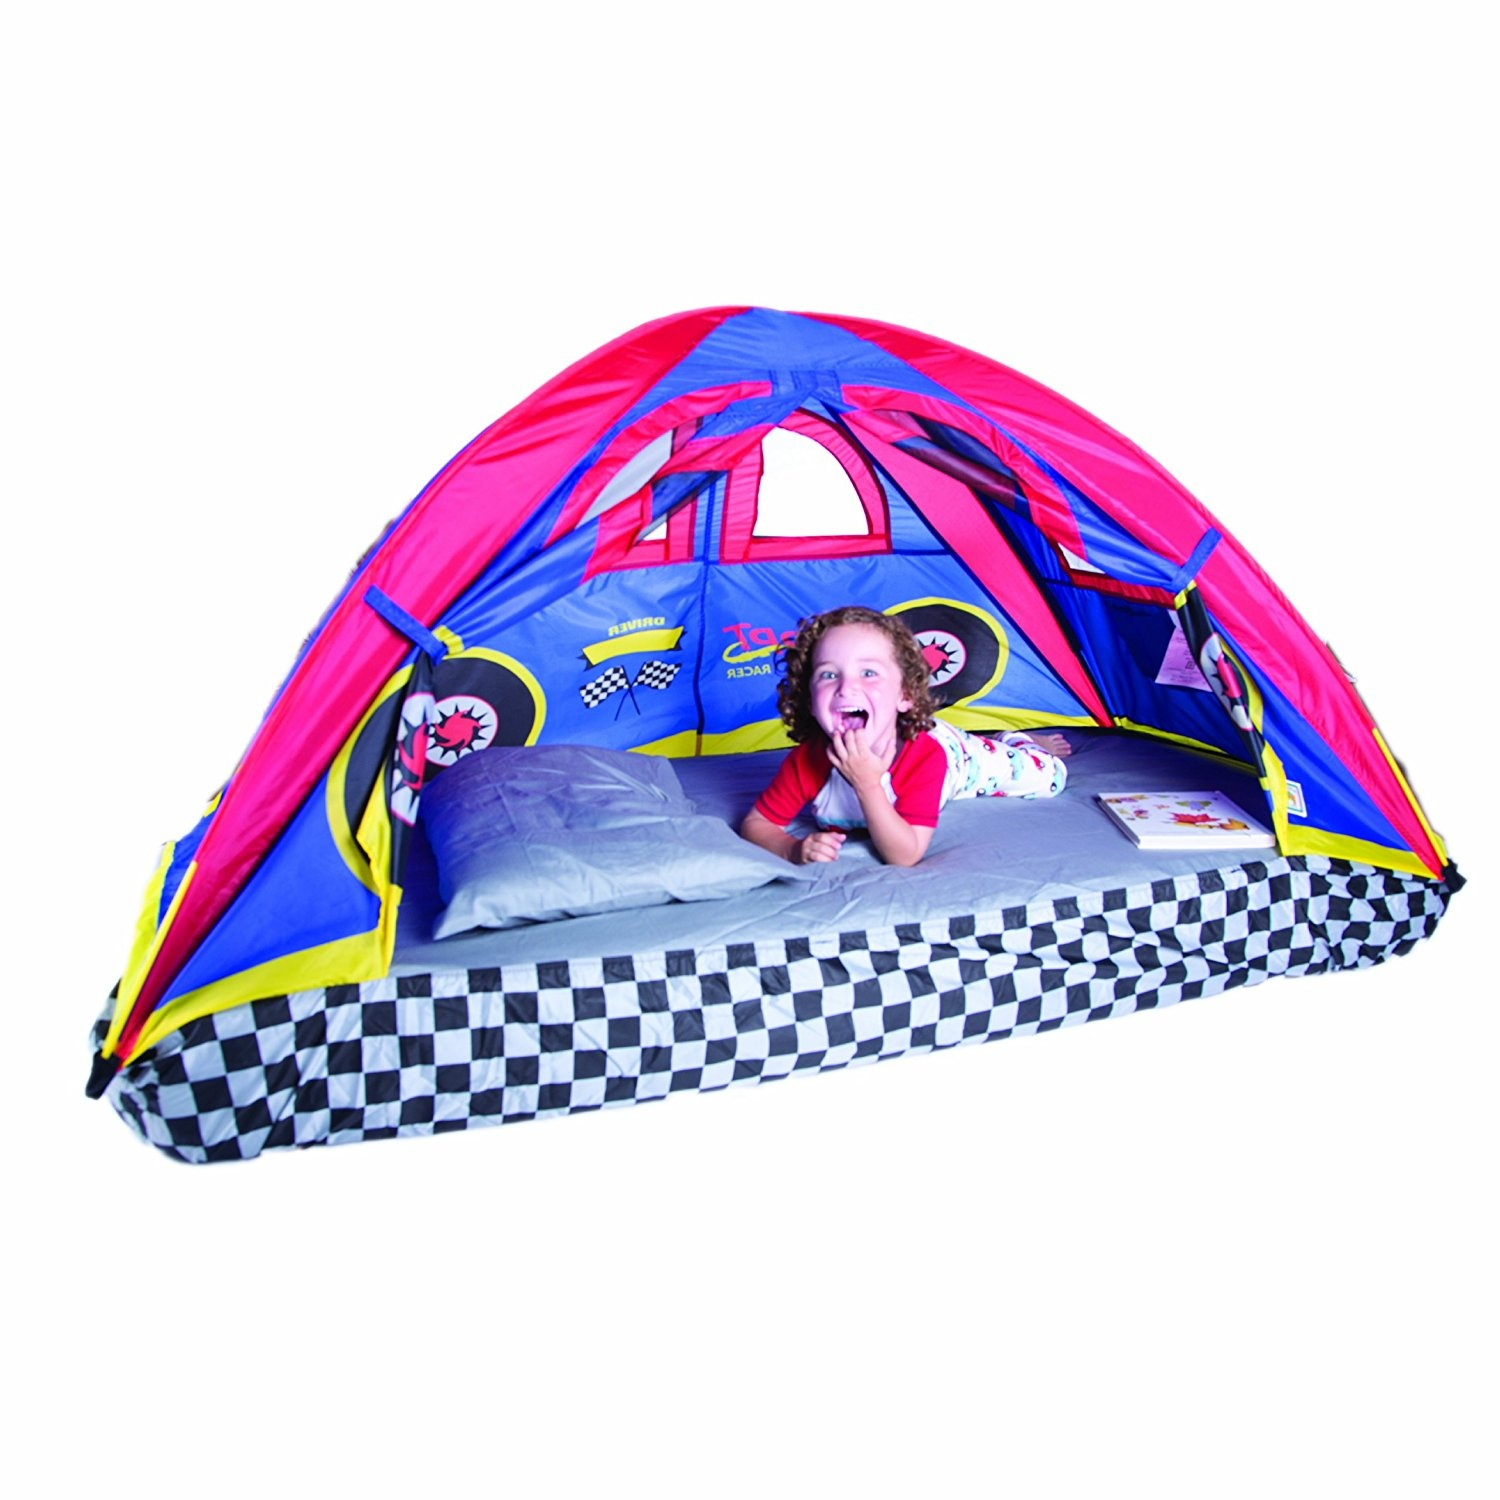 timeless design a4199 92daa Pacific Play Tents Kids Rad Racer Bed Tent Playhouse - For Full Size  Mattress